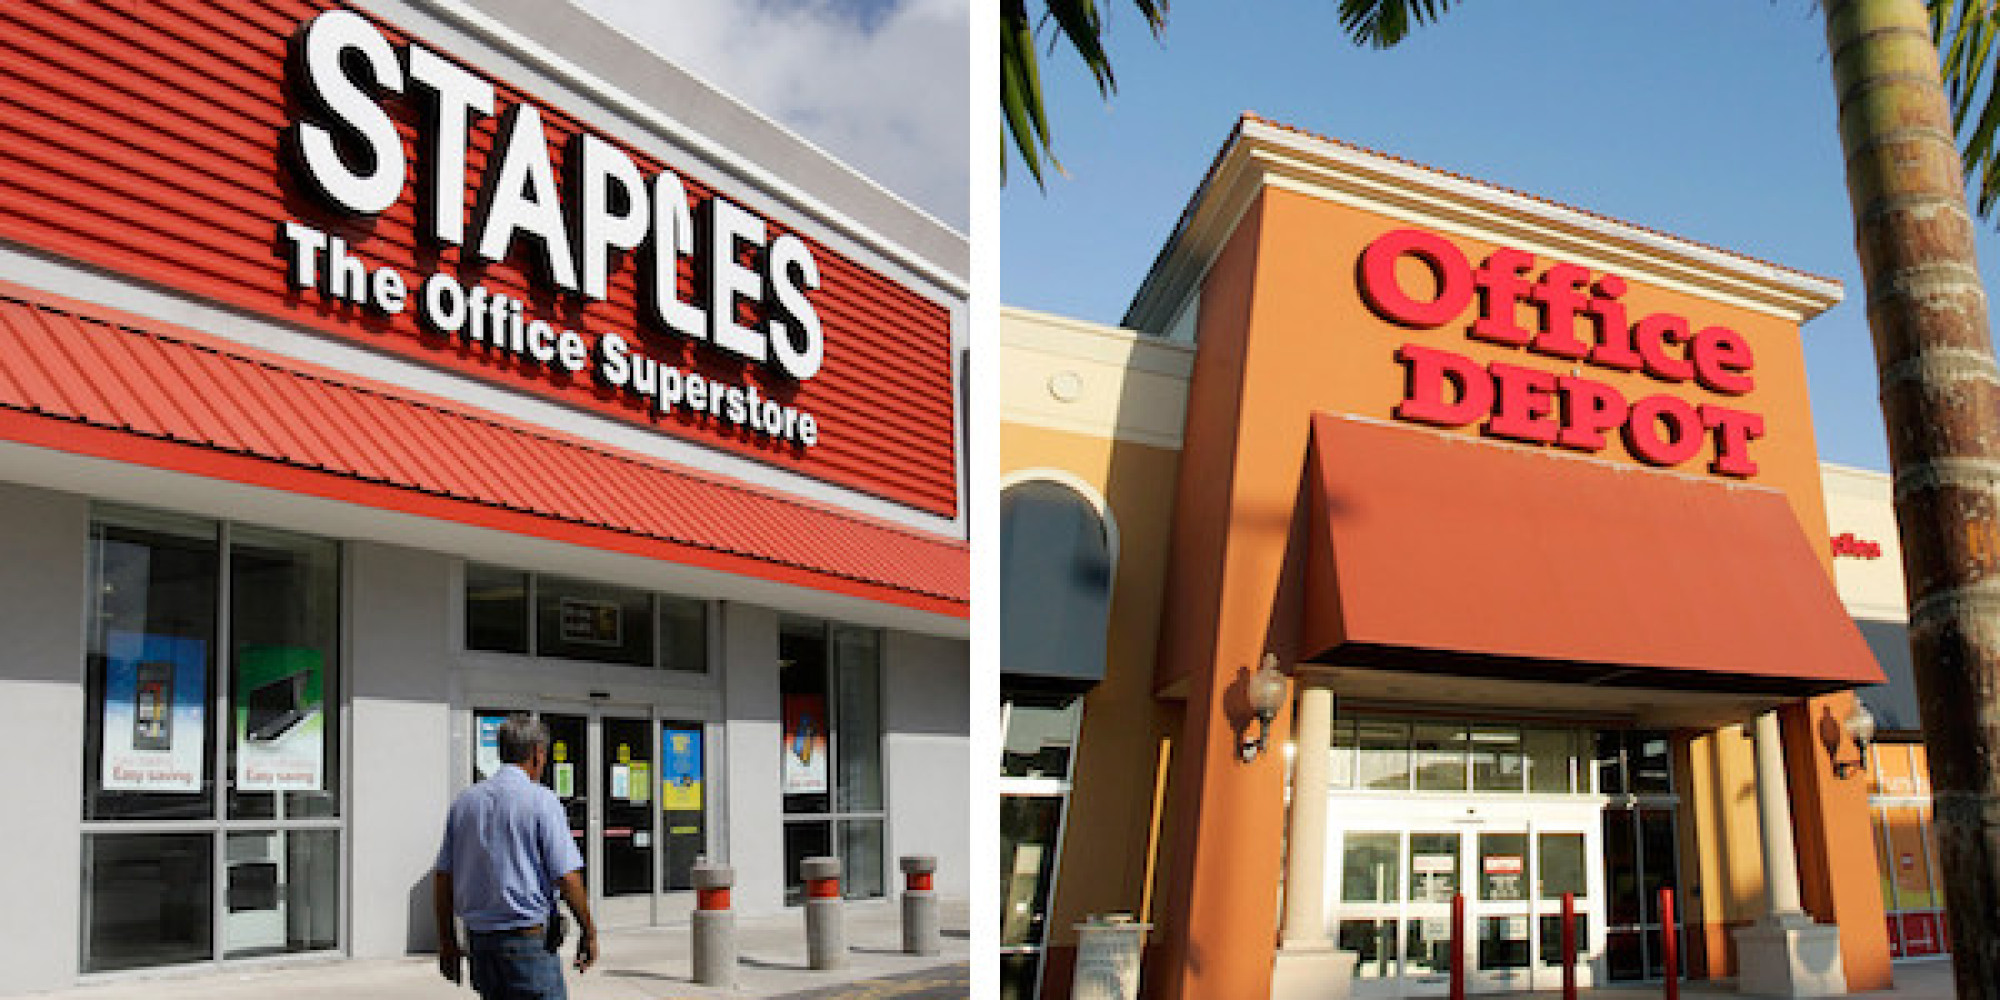 staples office depot in advanced merger talks wsj huffpost. Black Bedroom Furniture Sets. Home Design Ideas